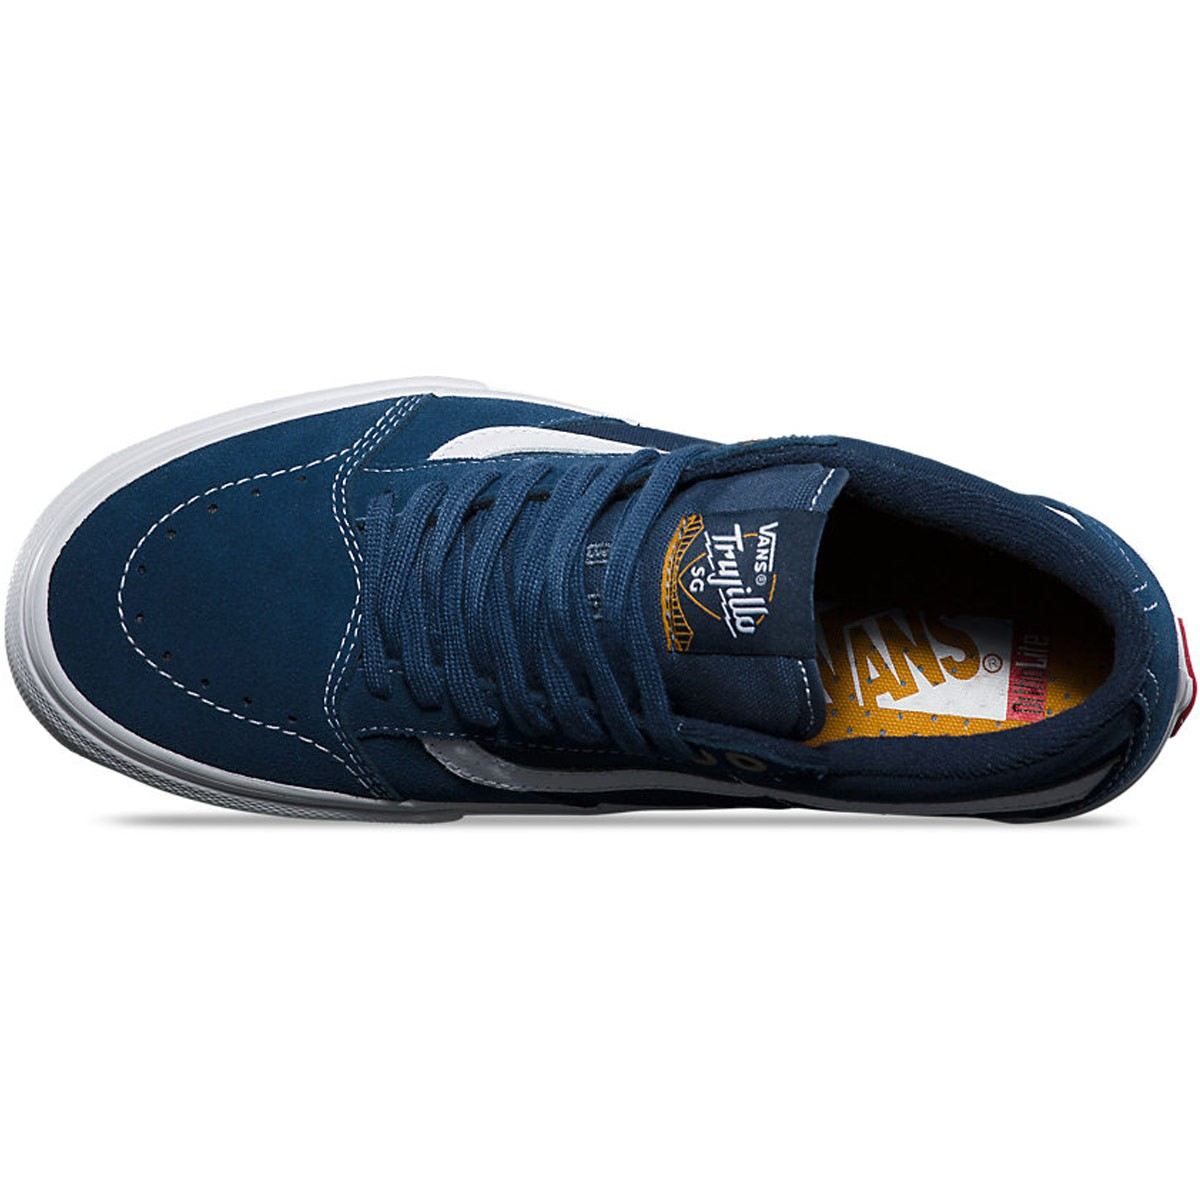 beb98f1ff0 Vans TNT SG Washed Canvas Shoes - Navy White - 8.0